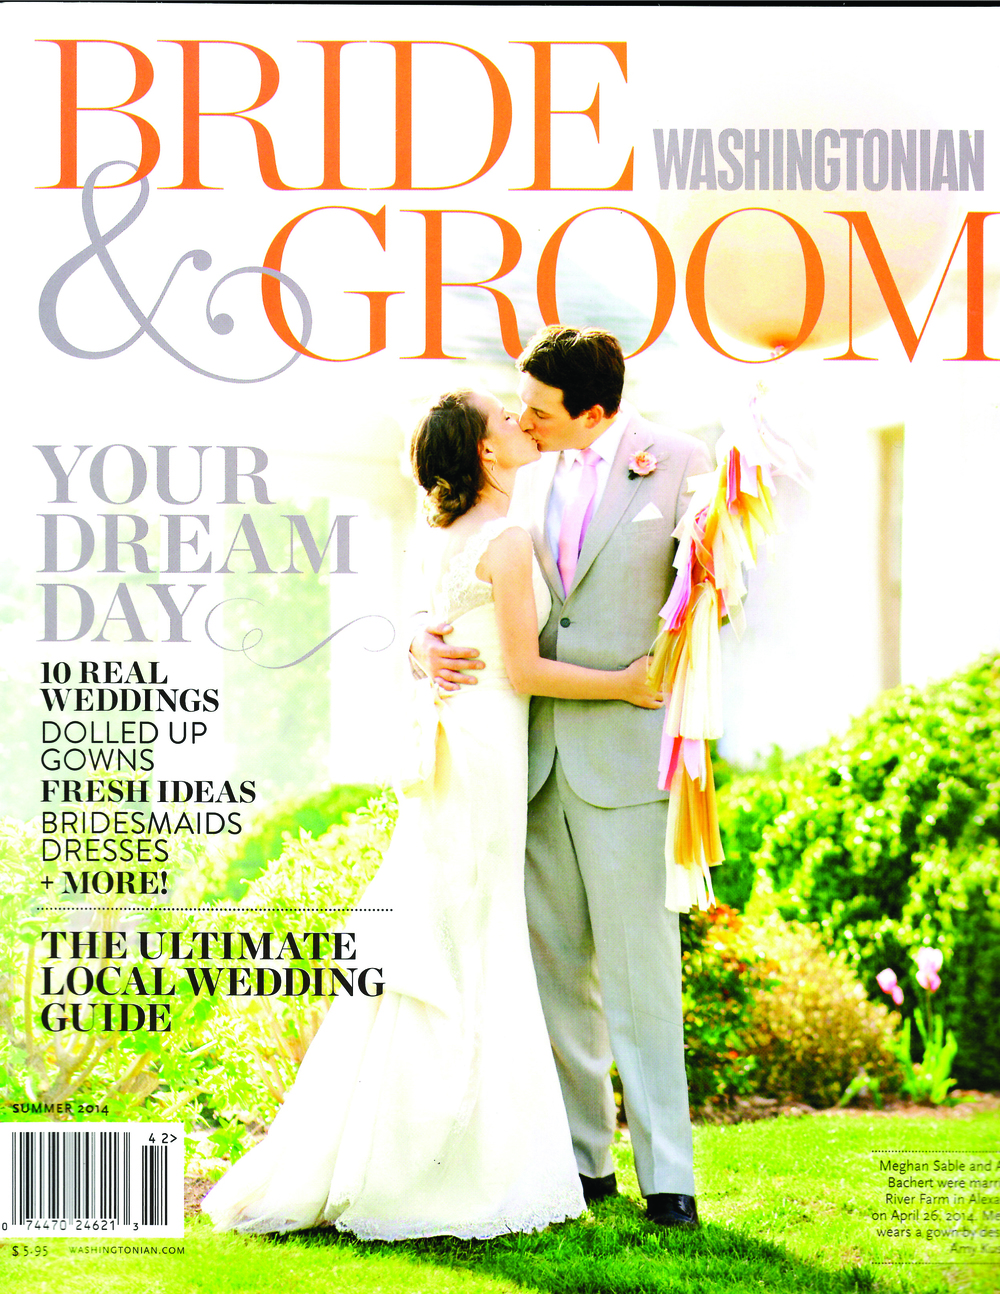 washingtonian-bride-groom-cover-summer-2014-press-victoria-clausen-floral-events.jpg